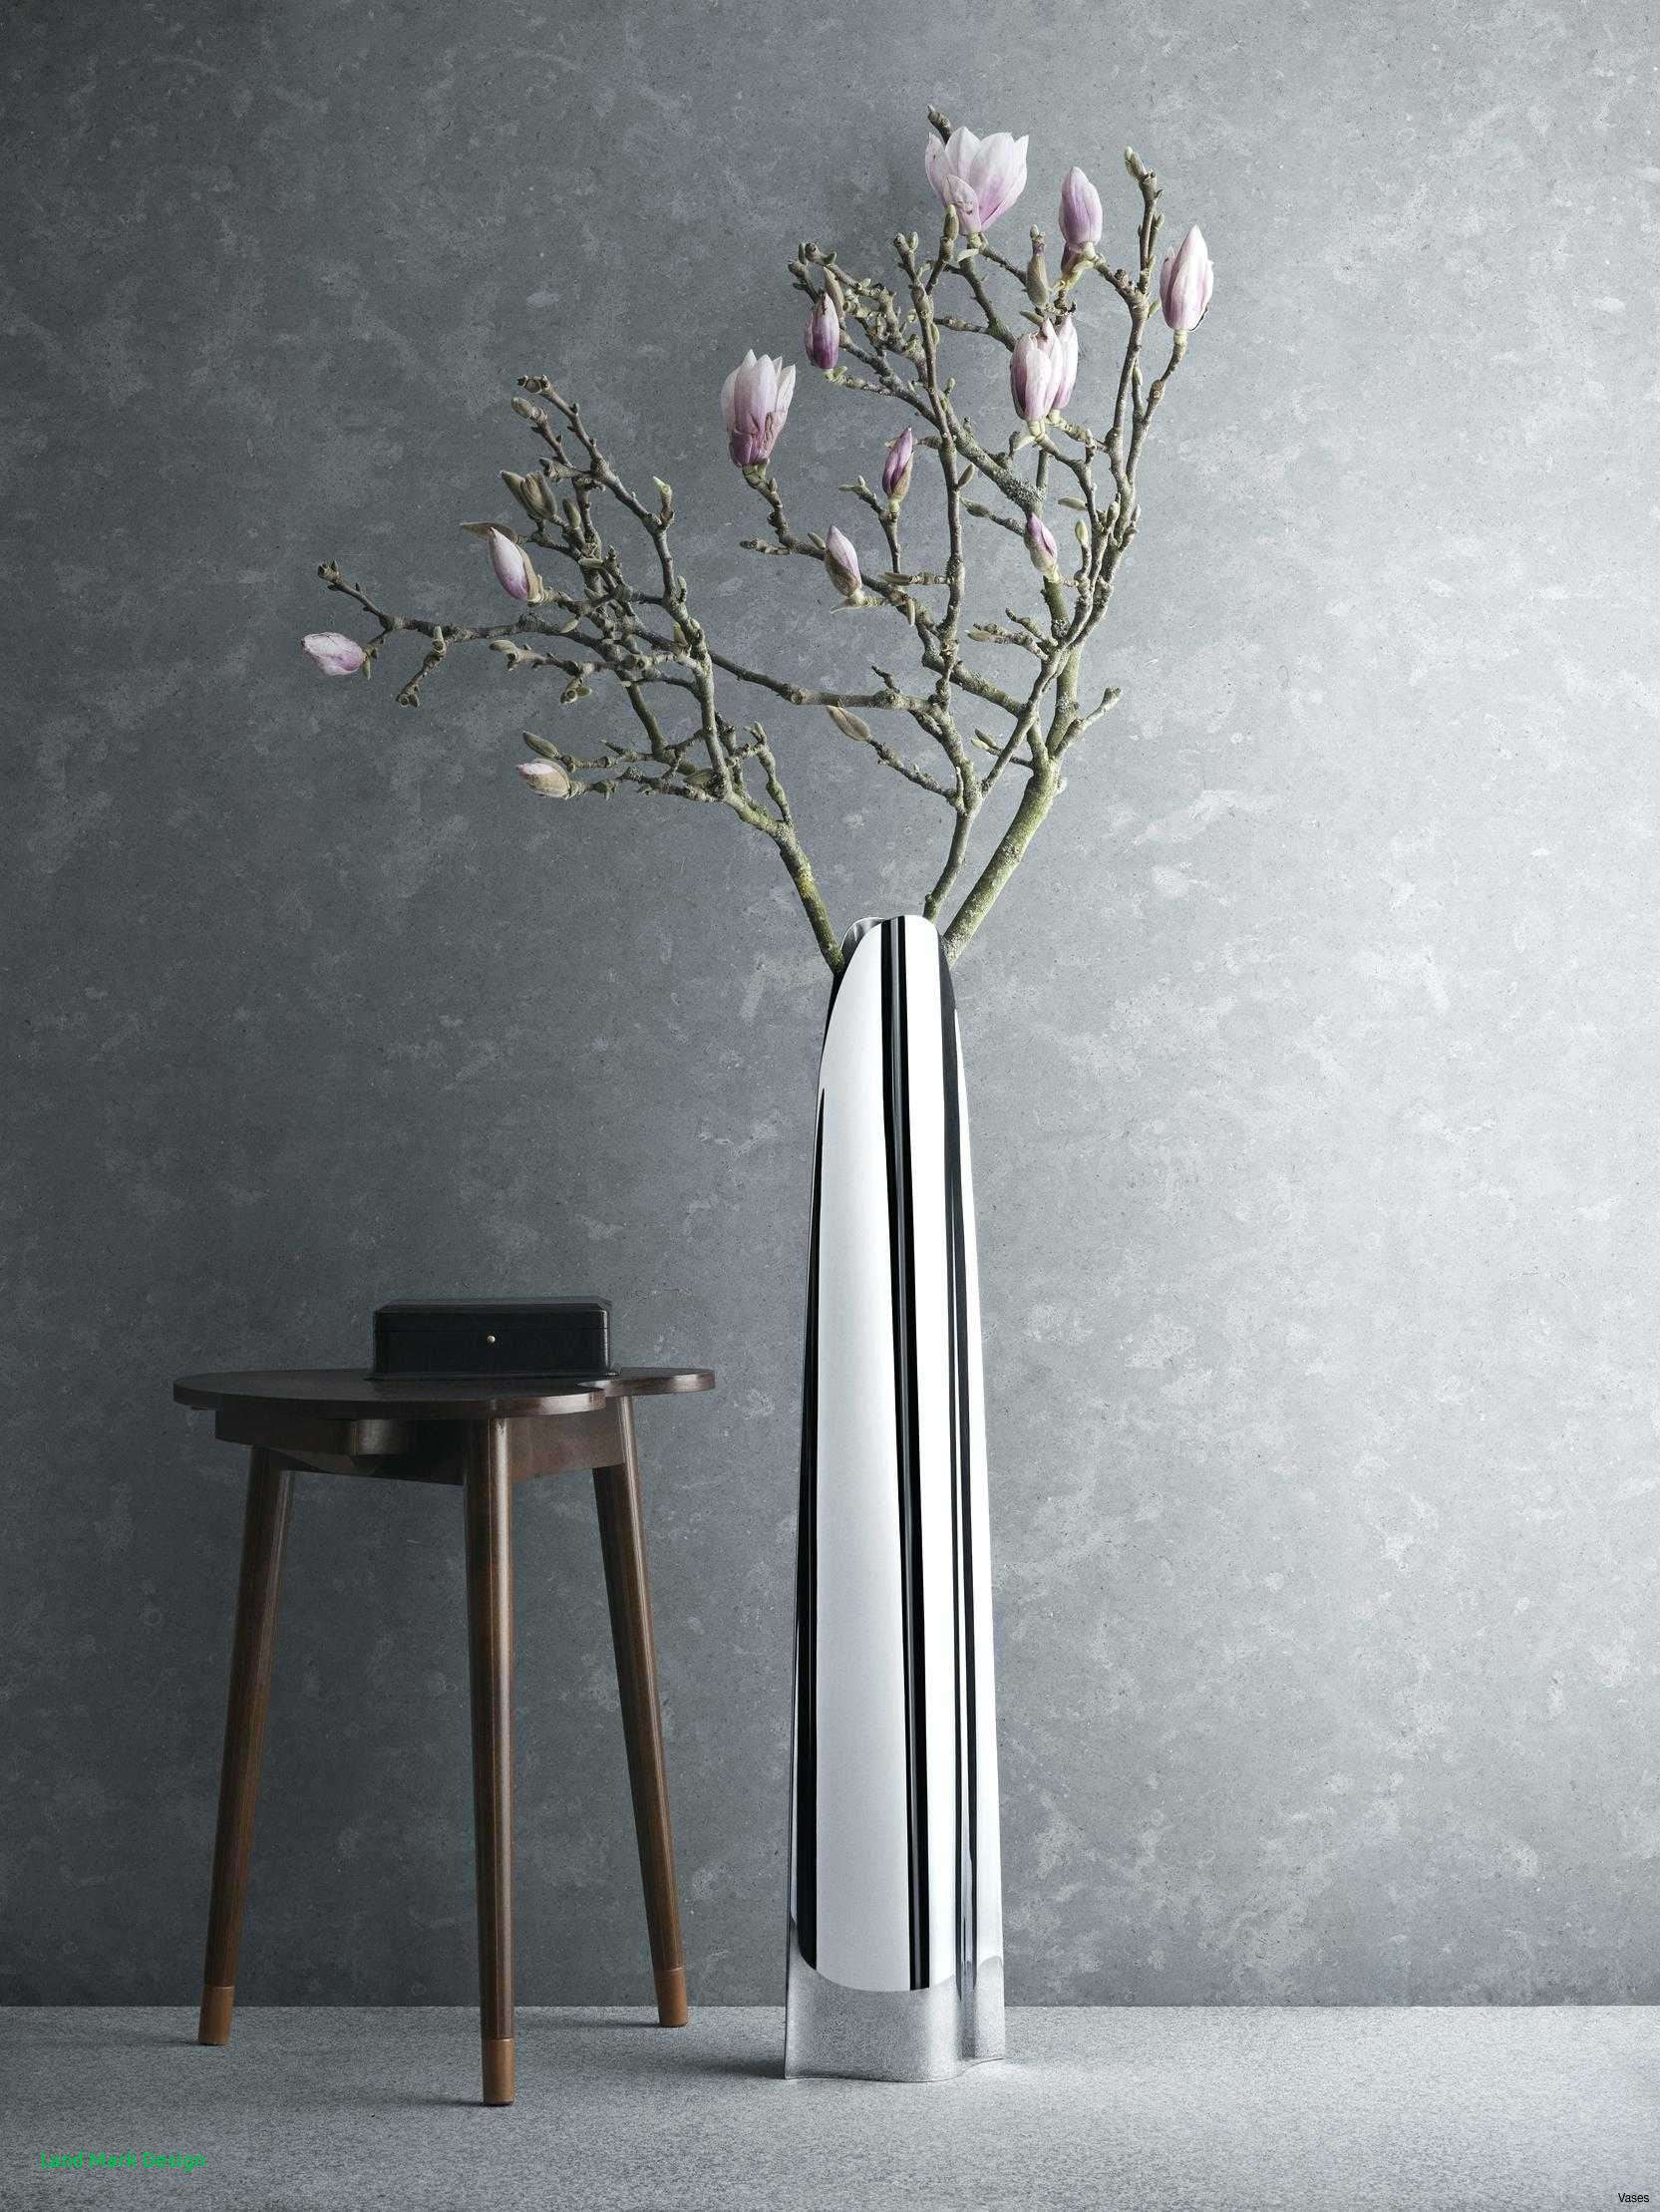 cheap floor vases with branches of floor vase branches pictures vases vase with twigs red sticks in a i with floor vase branches image tall vase with branches design of floor vase branches pictures vases vase